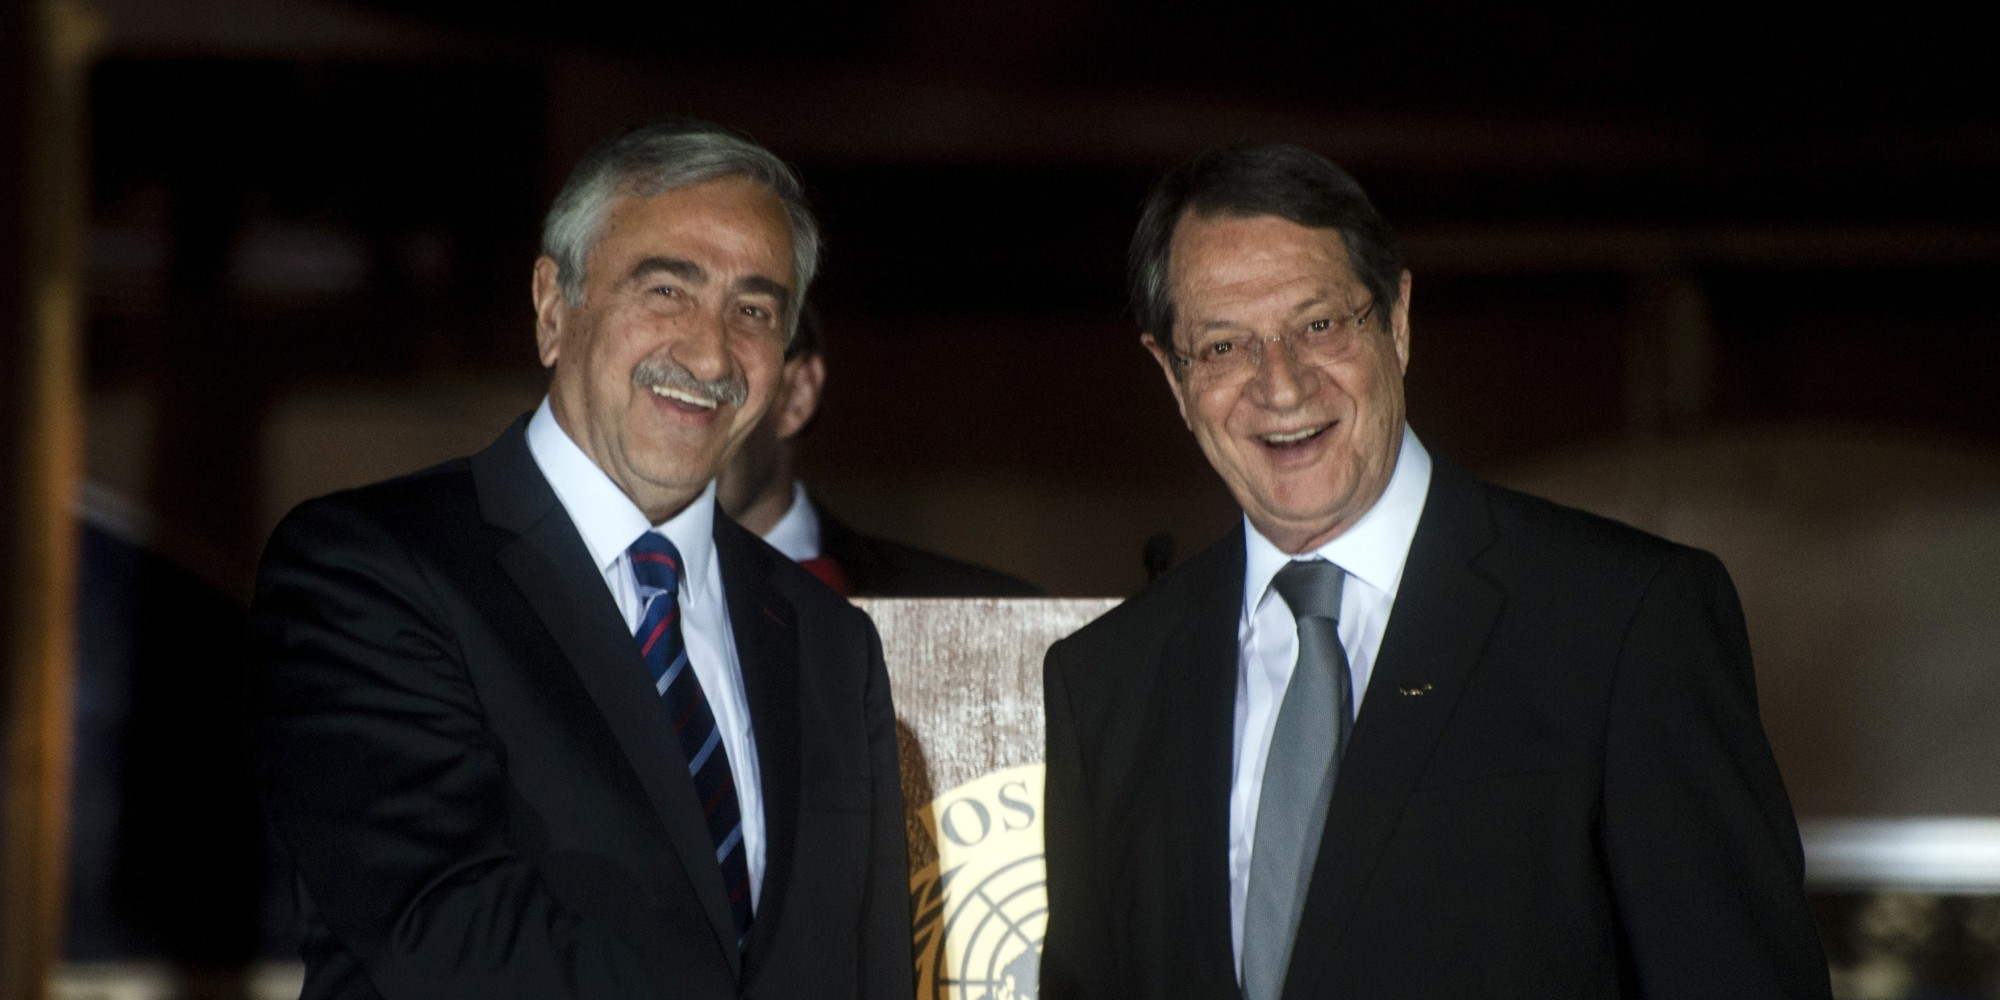 Anastasiades cancelled his meeting with Akinci